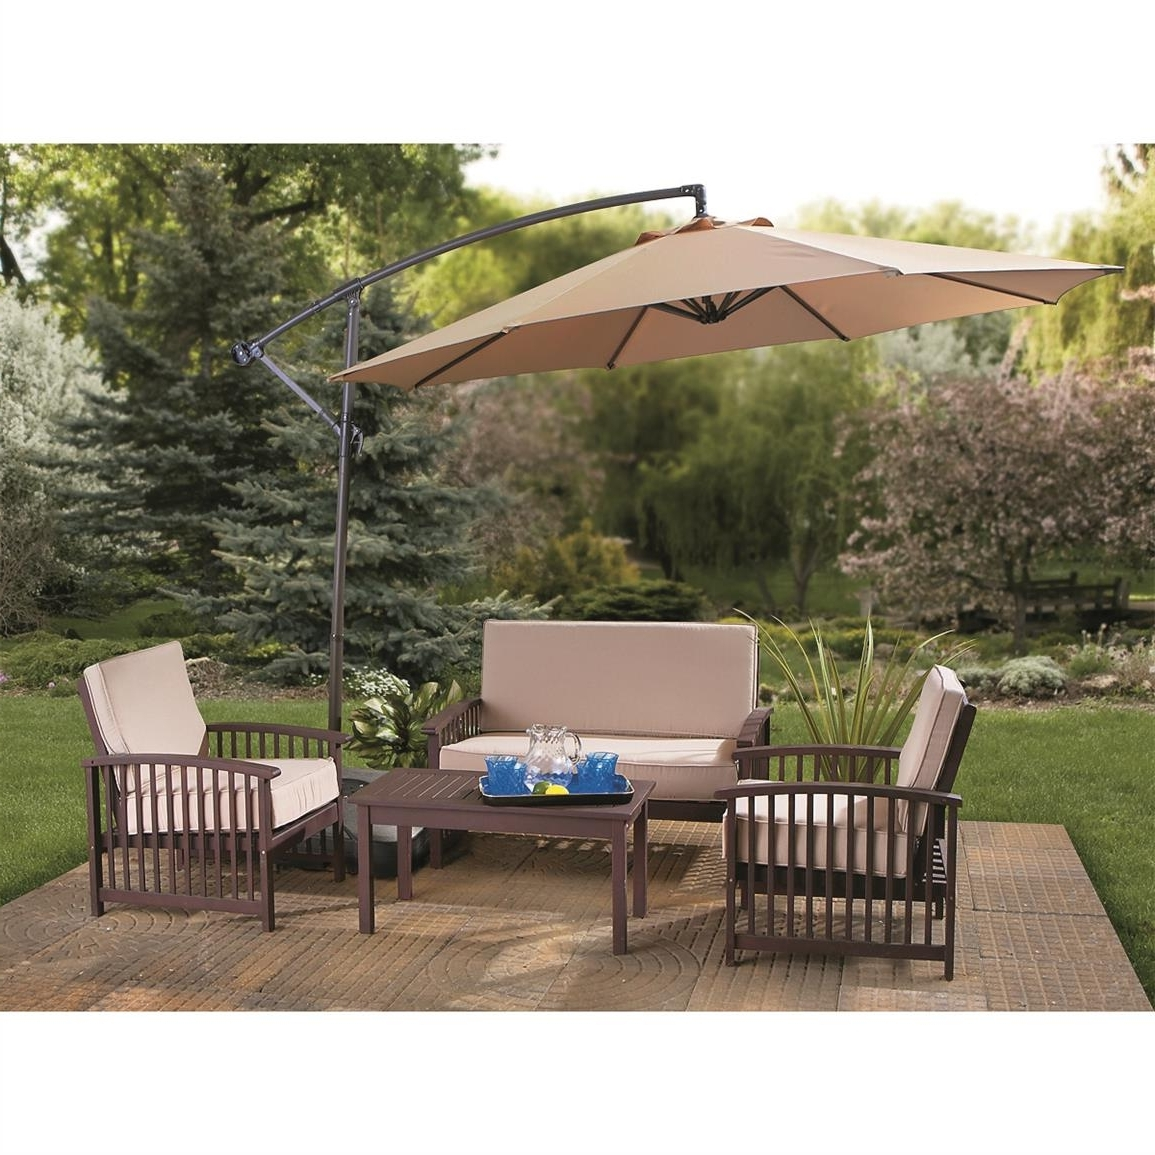 Outdoor: Patio Cantilever Umbrella Enchanting Outdoor Furniture A Throughout Most Recent Patio Furniture Sets With Umbrellas (View 19 of 20)